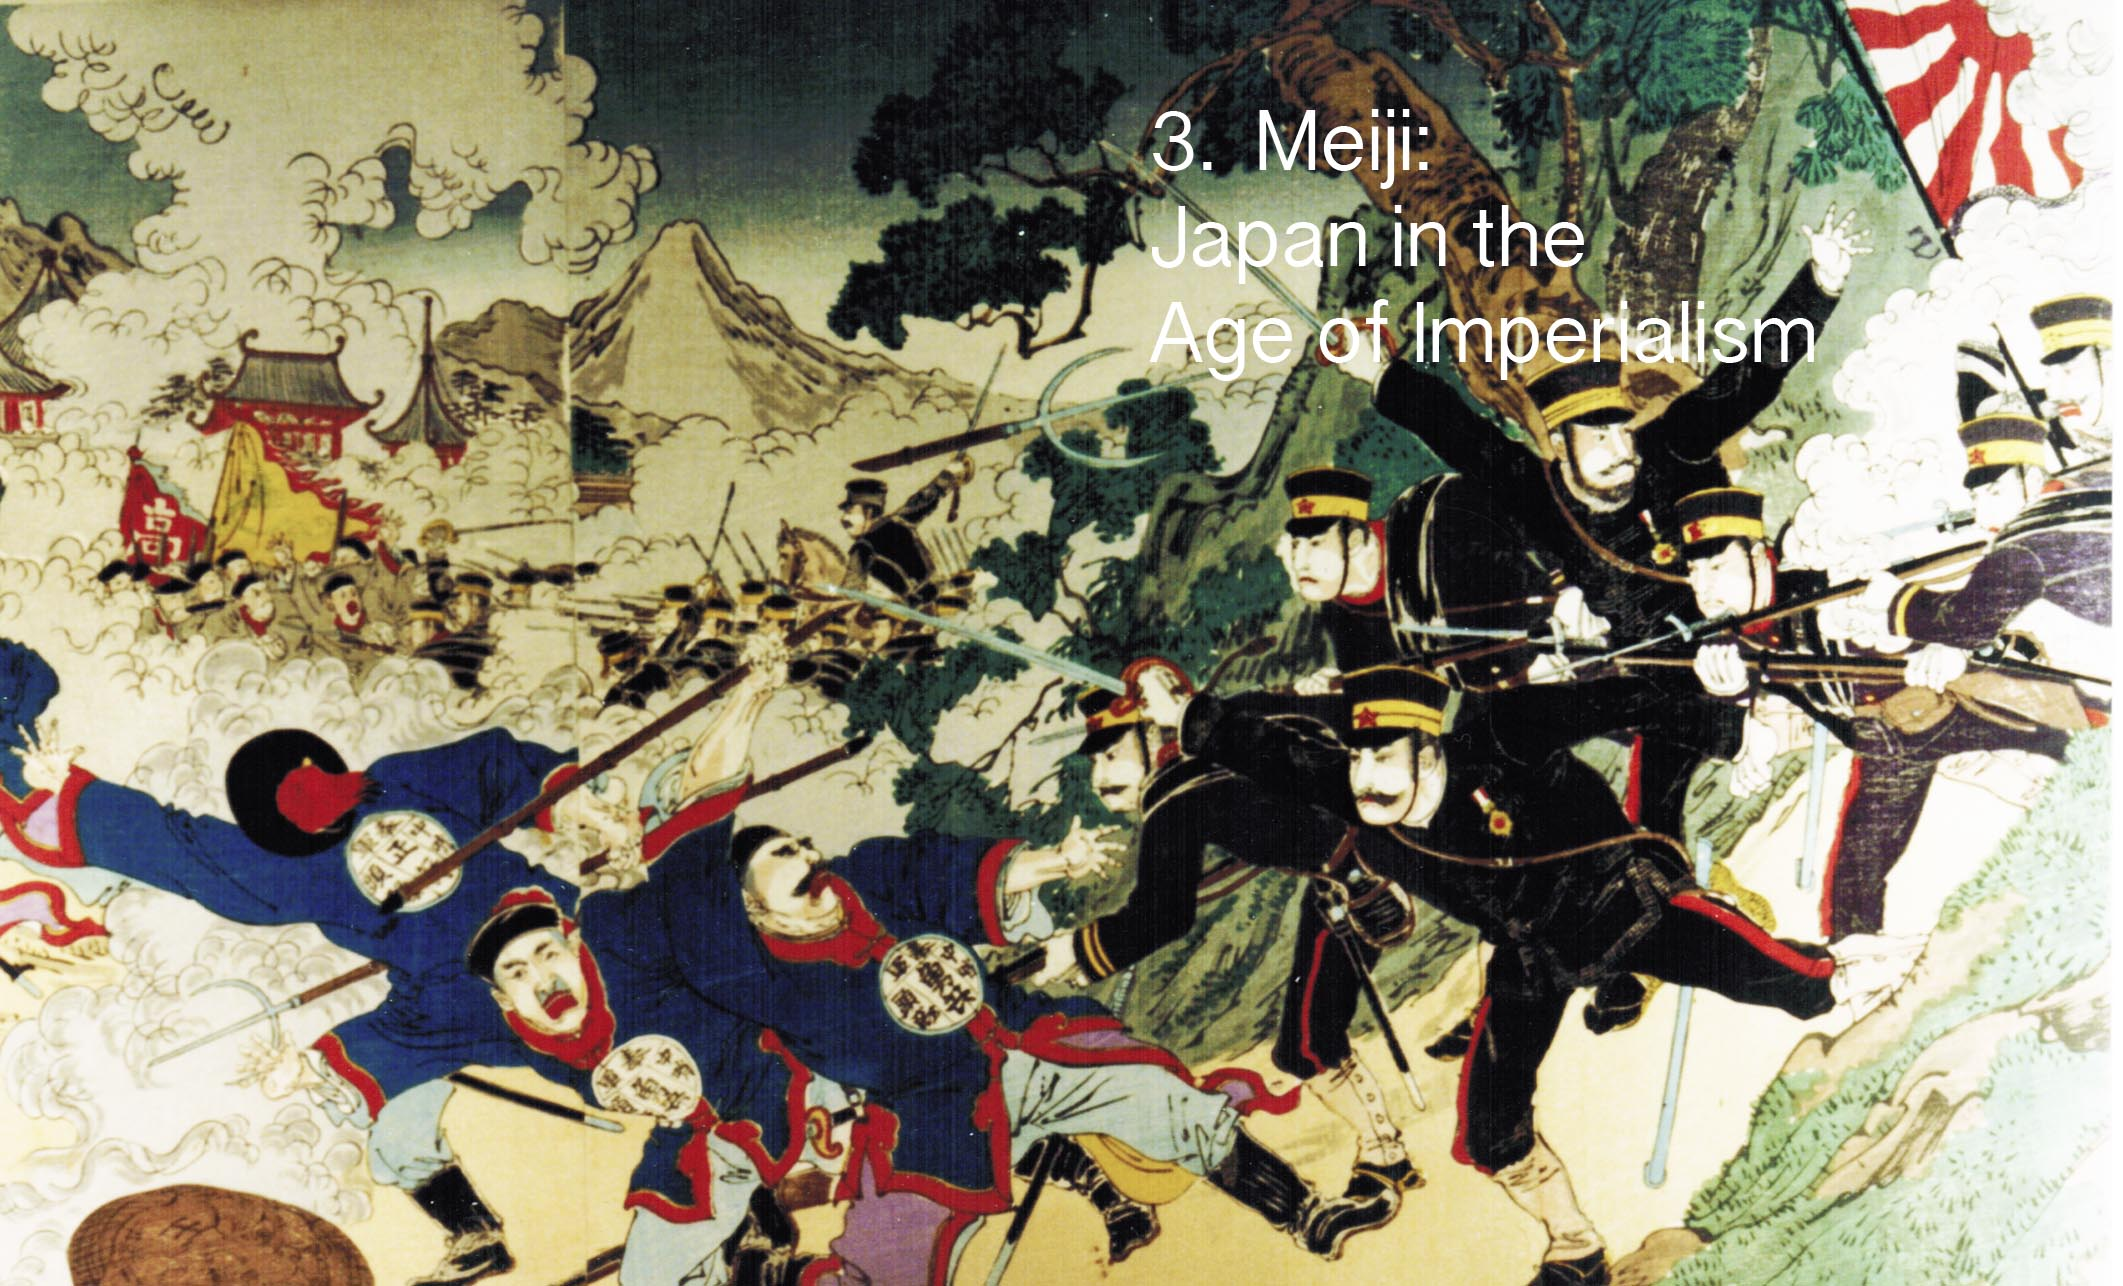 Meiji troops attack edit